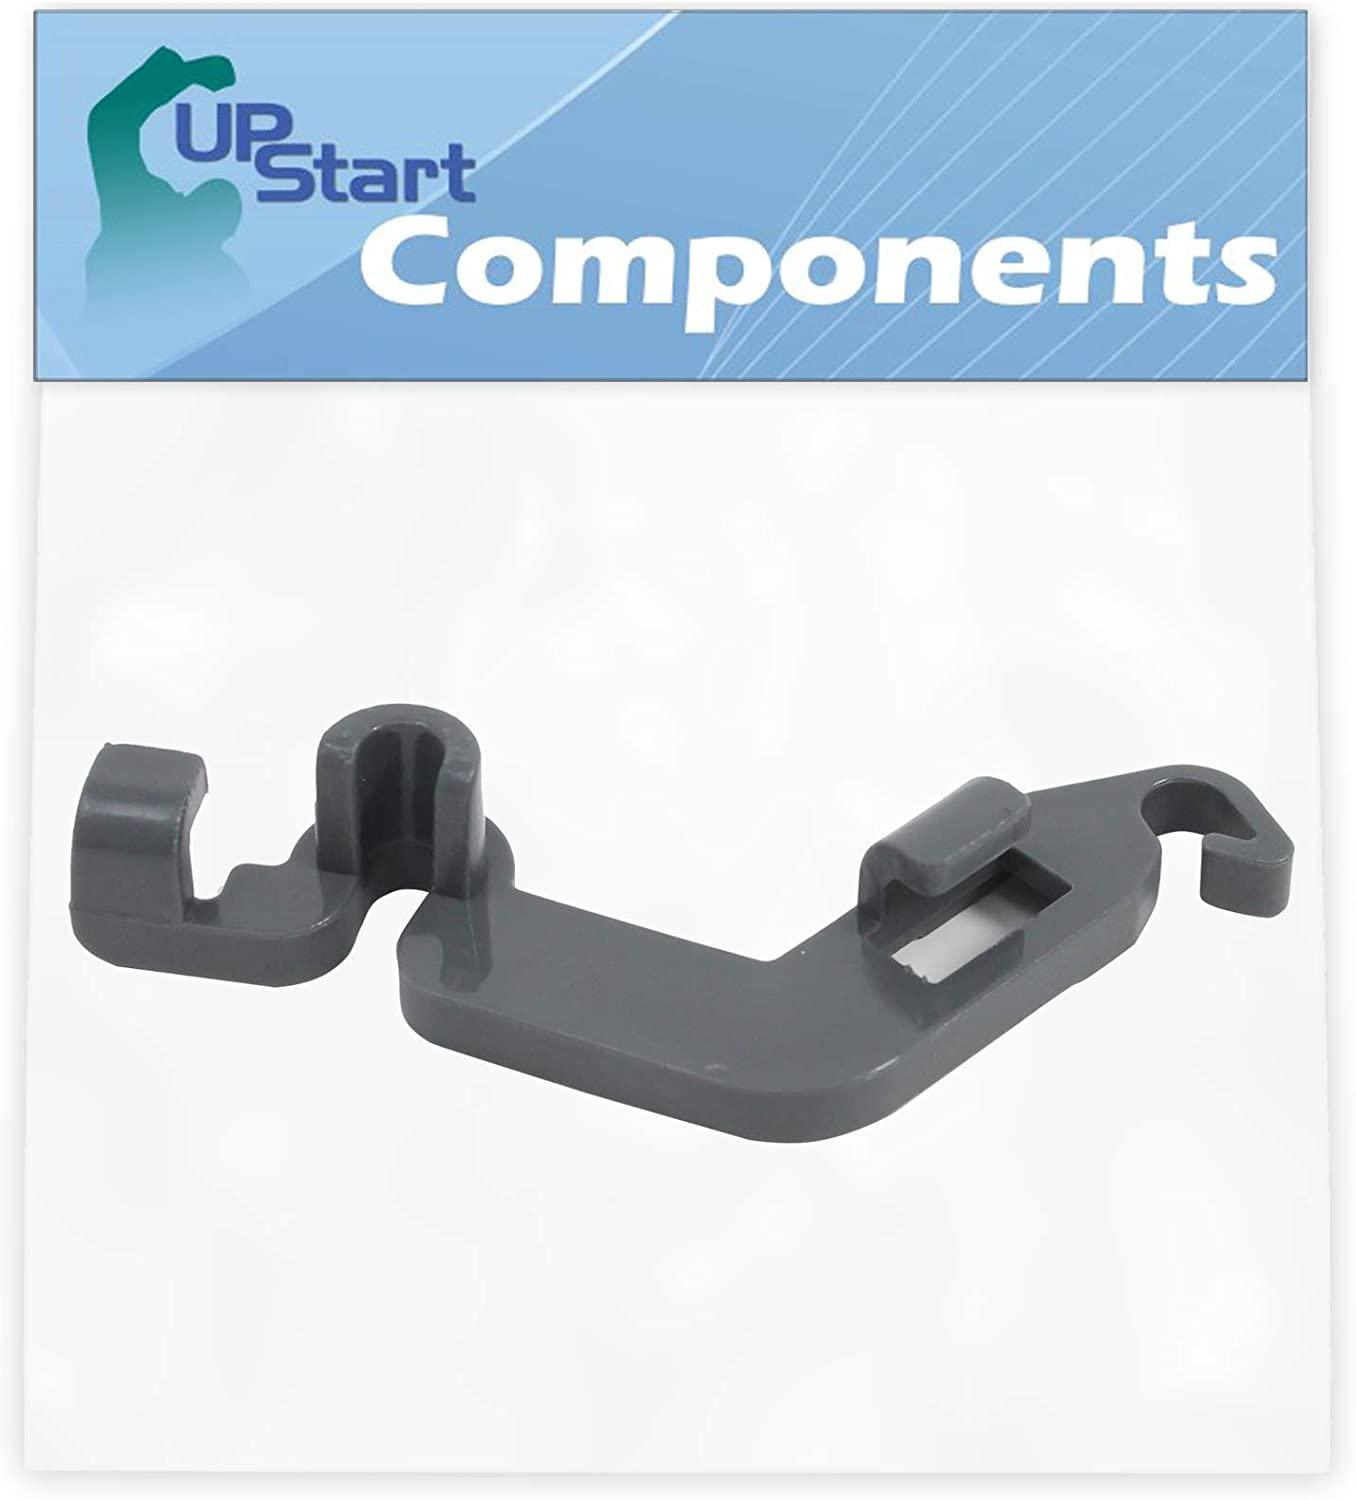 W10082853 Dishwasher Tine Pivot Clip Replacement for KitchenAid KUDE40FXSS4 - Compatible with WPW10082853 Tine